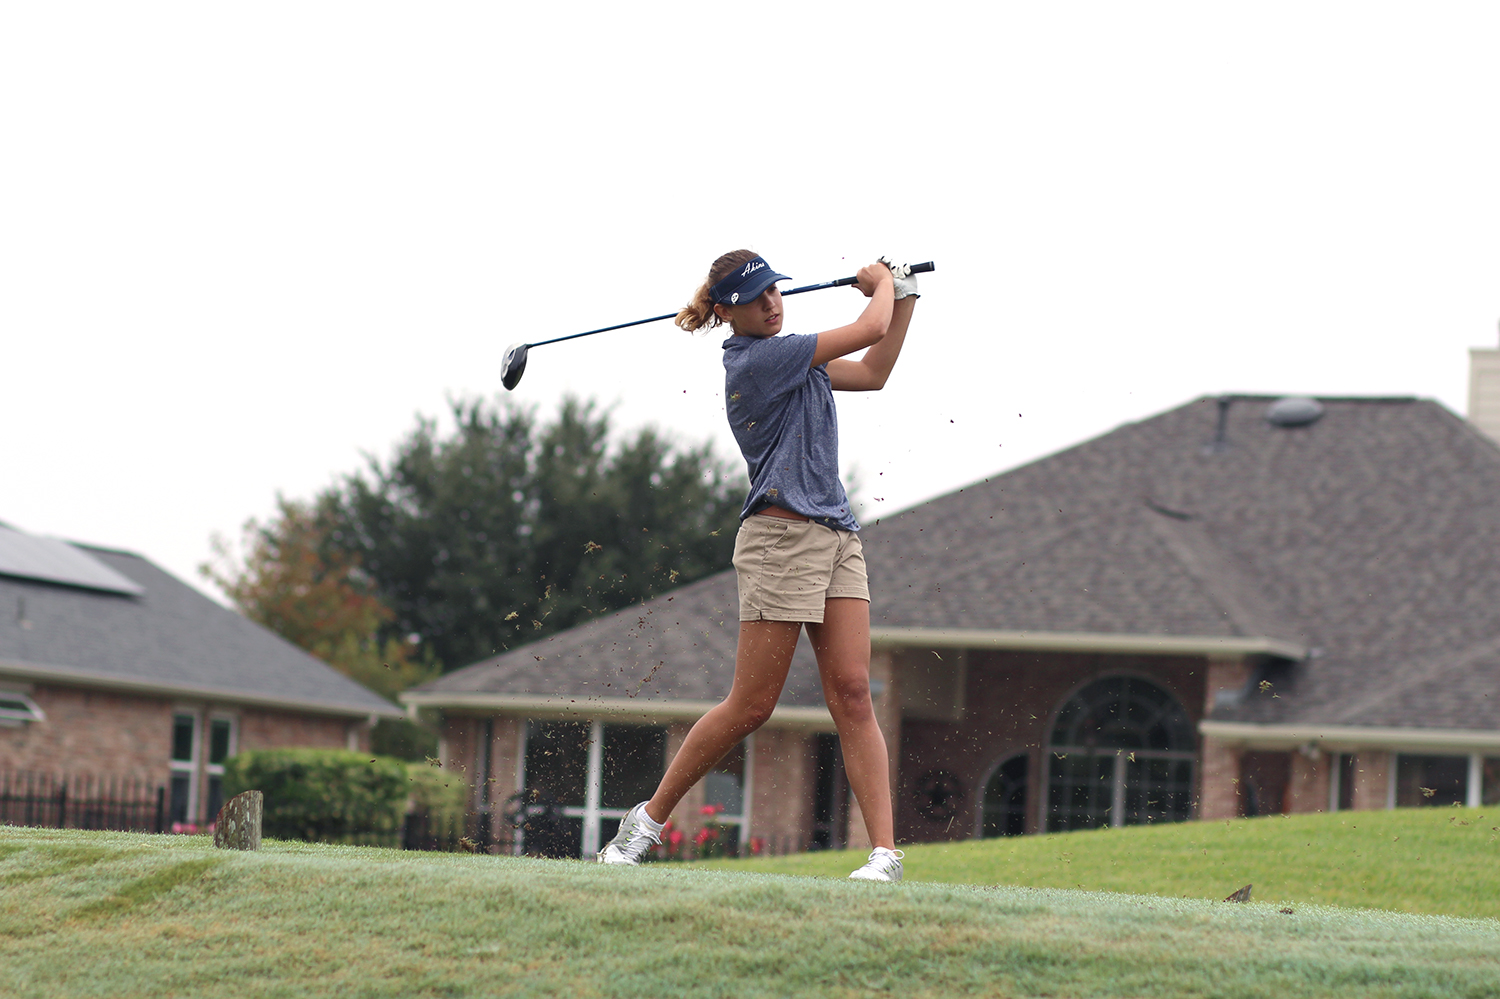 Freshman Riley Romero tee's off to start off her golf tournament. She worked to finish as a top freshman.